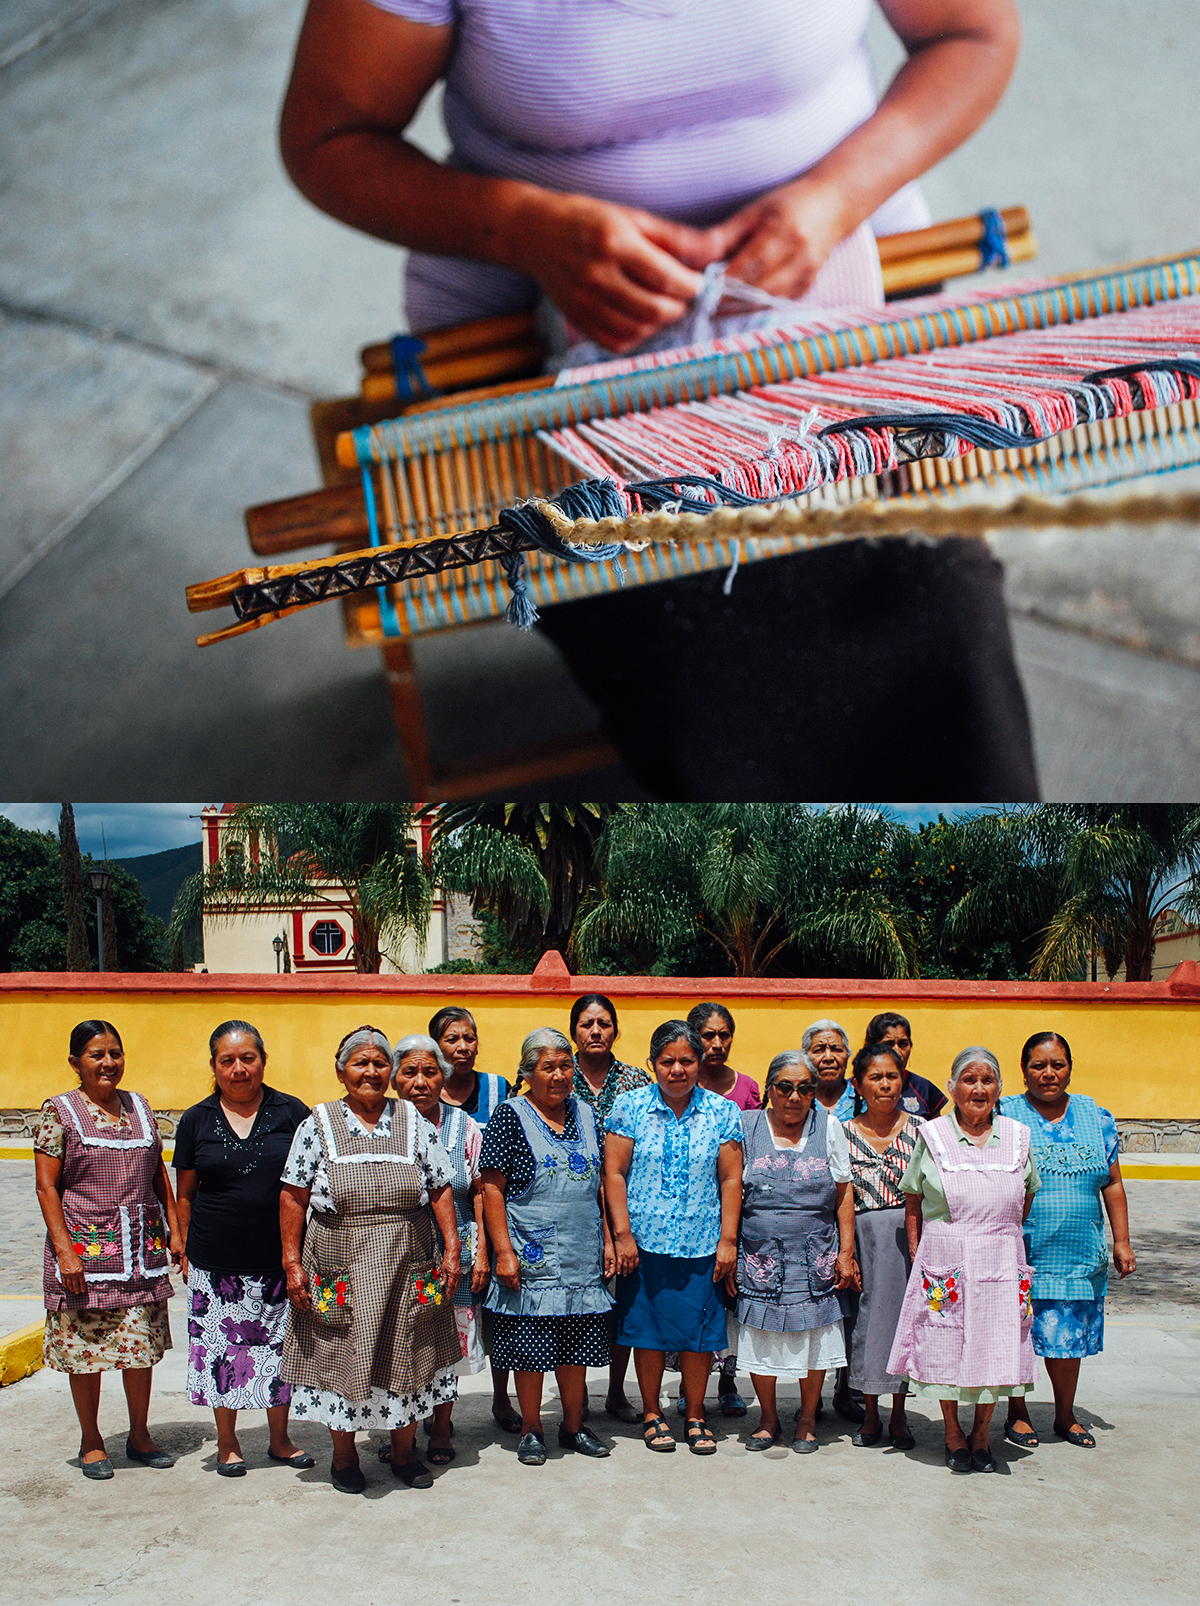 Women Weavers of Oaxaca - This incredible group of women ranges from ages 28 to 94!Like a family, each woman works alongside one another, weaving on the group's traditional backstrap looms.Most have learnt their craft from the other women in their families, purchasing the cotton from the nearby Puebla and dying it themselves before starting the weaving process together.Each cotton clutch piece takes approximately 4 hours to weave, with each artisan sharing a bit of their legacy in every bag.